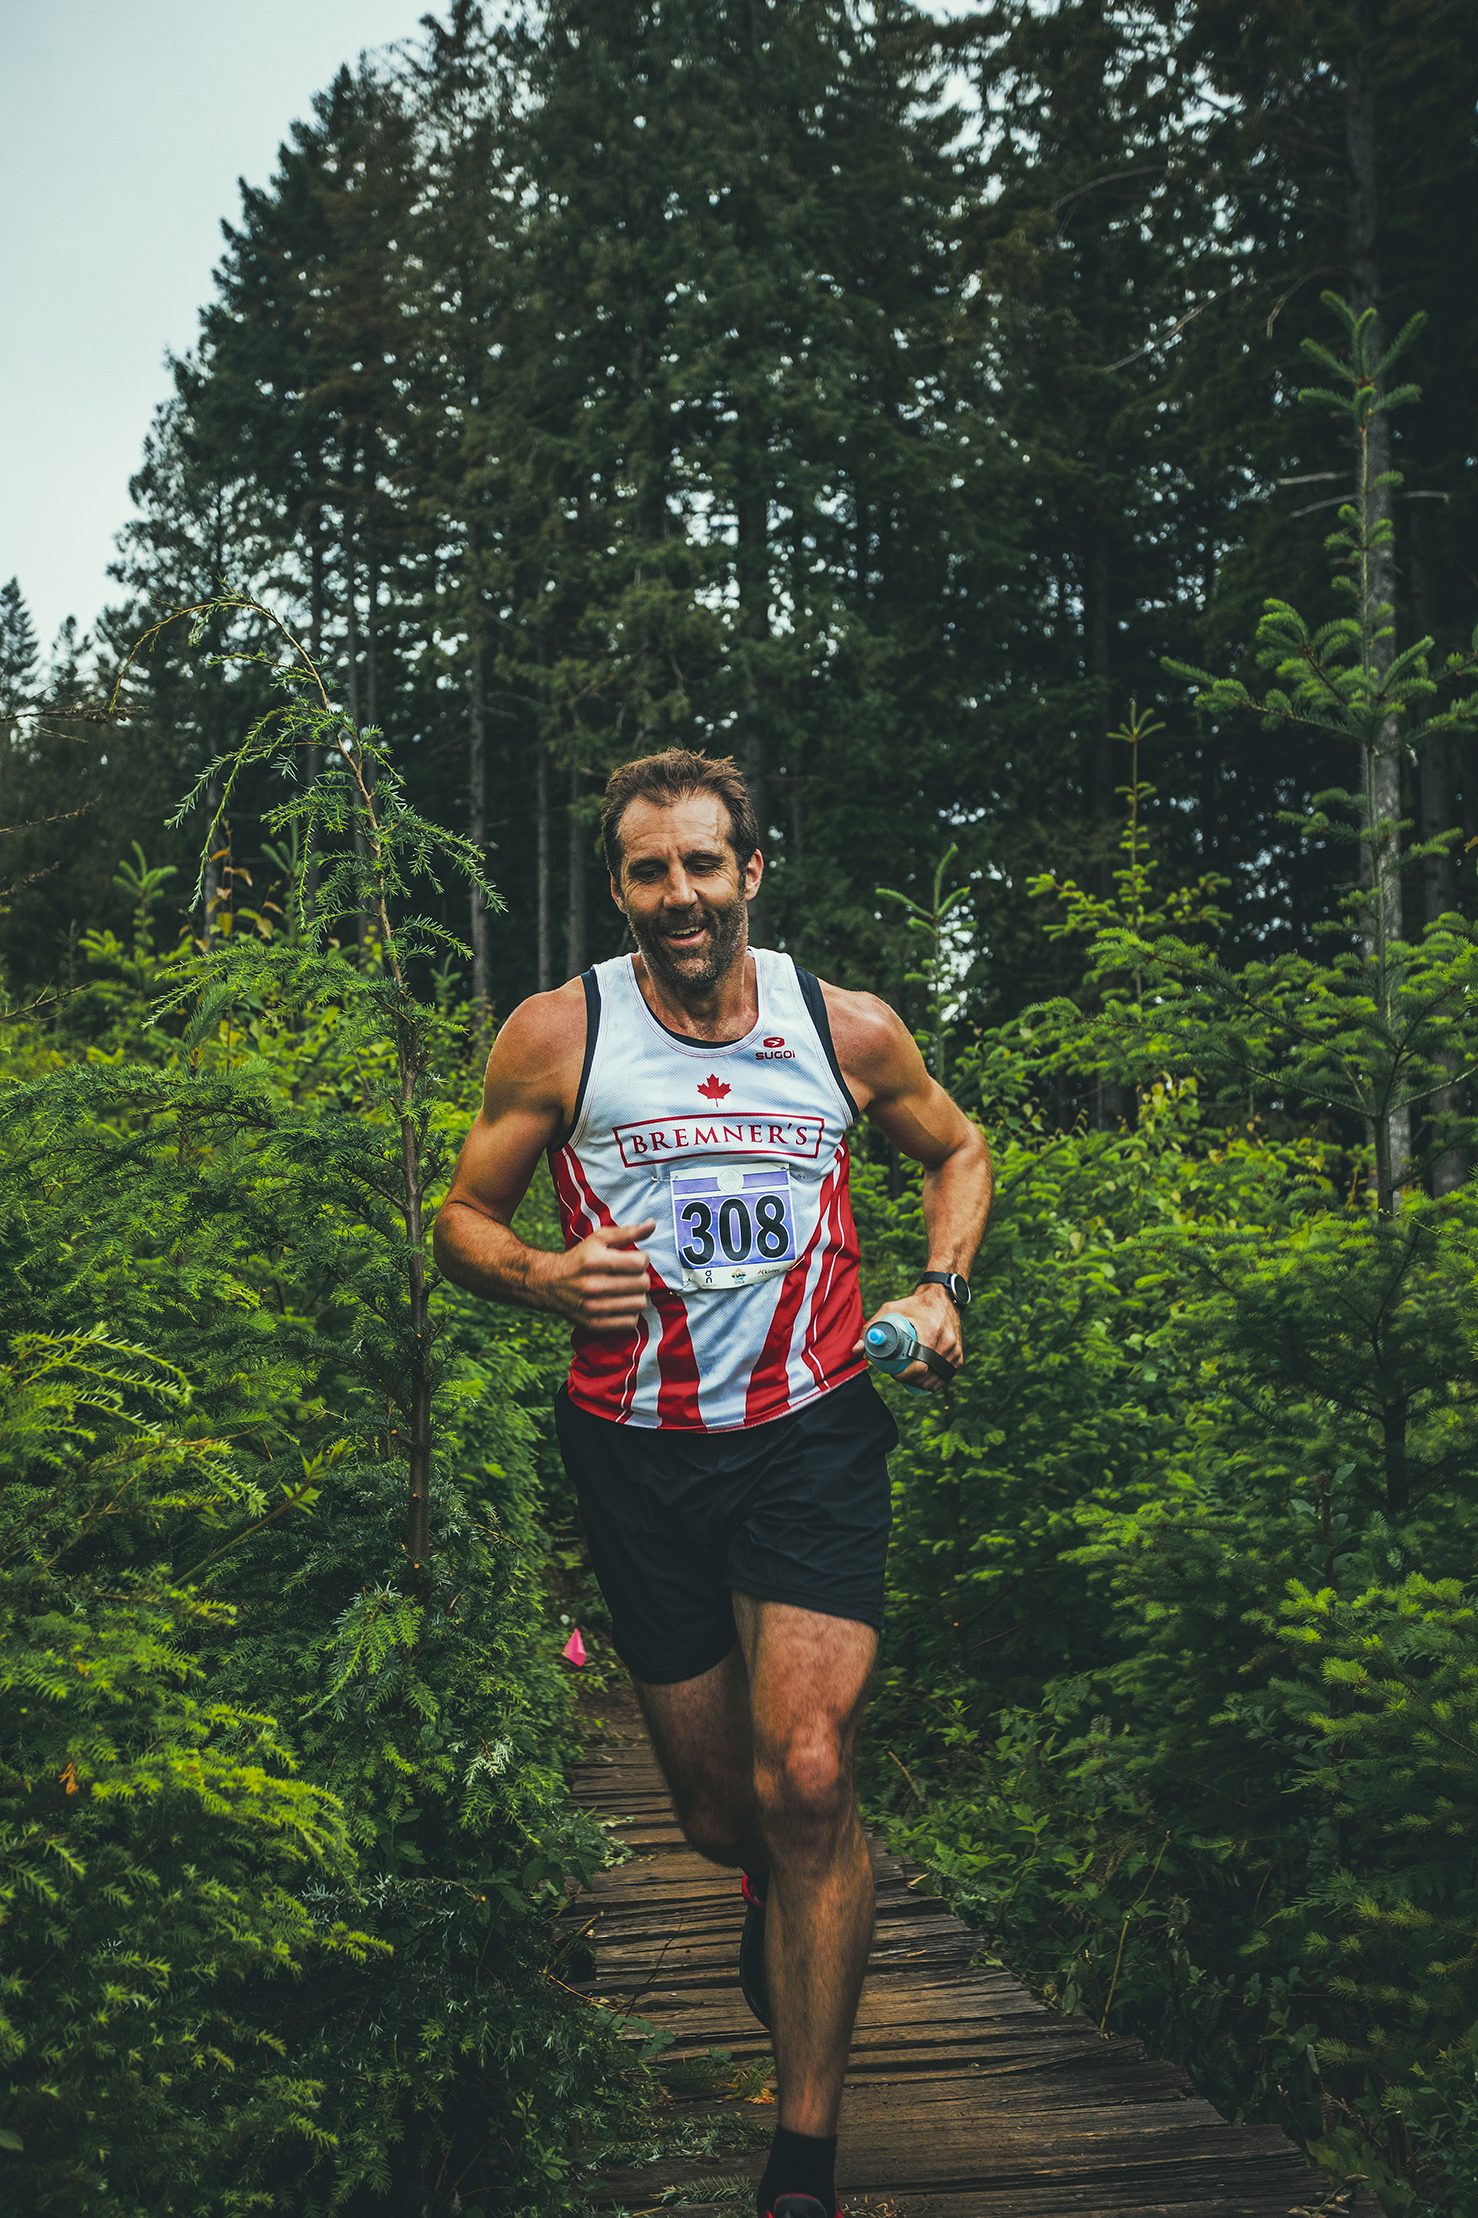 Fraser Valley Trail Races - Bear Mountain - IMG_1463 by Brice Ferre Studio - Vancouver Portrait Adventure and Athlete Photographer.jpg